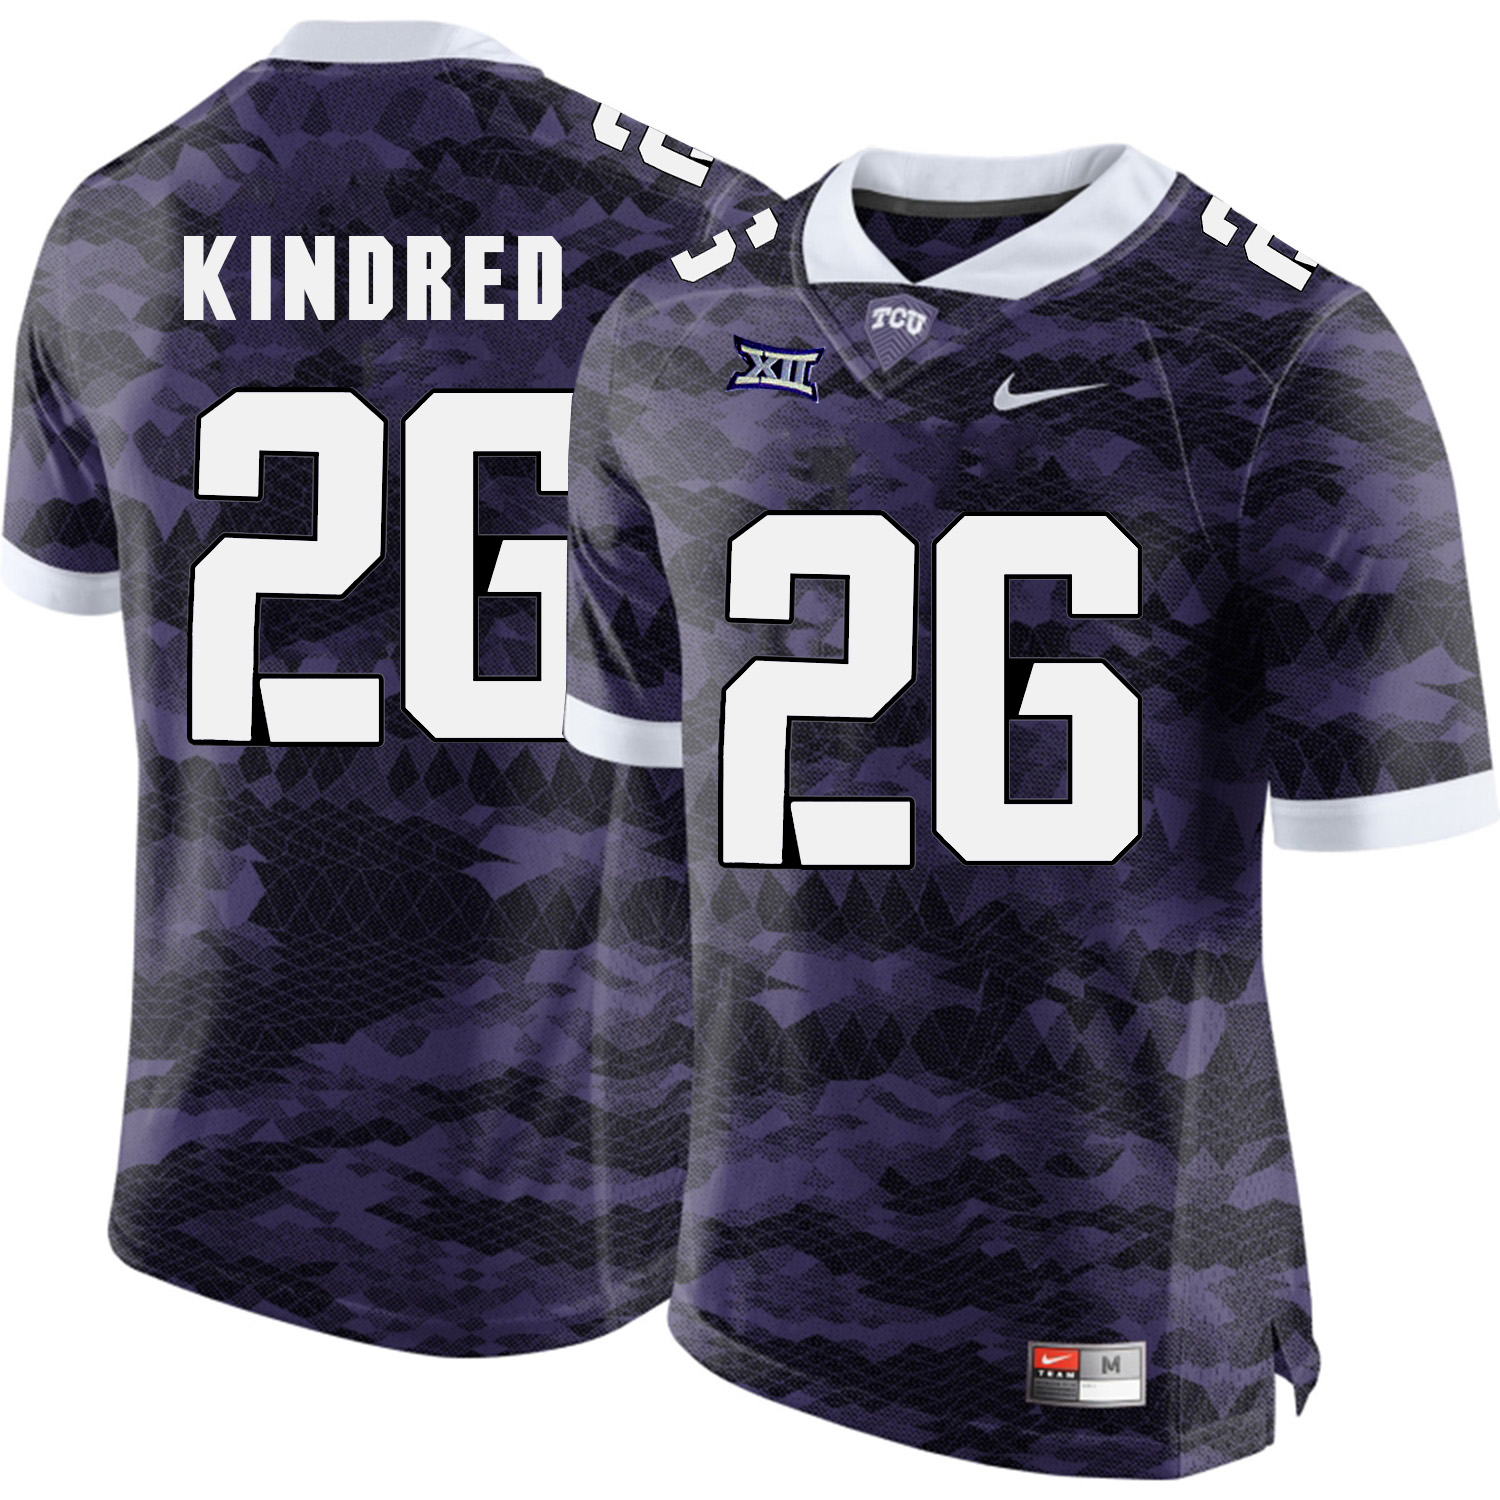 TCU Horned Frogs 26 Derrick Kindred Purple College Football Limited Jersey